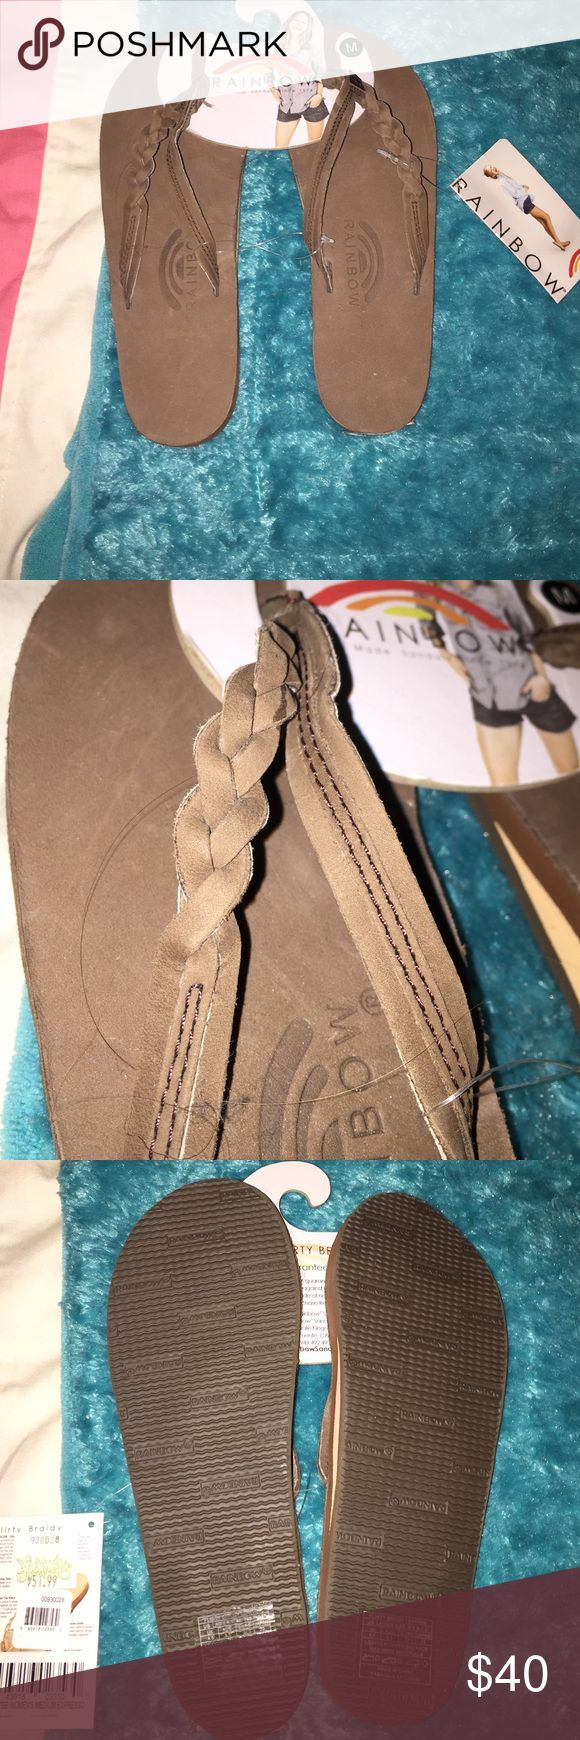 Woman's Rainbows flipflops! ! Medium! 6 1/2-7 1/2 Women's rainbows! Size medium! 6 1/2- 7 1/2 size! Braided! Come with the tags! Never worn! 🌈❤ price can be negotiable Rainbow Shoes Sandals